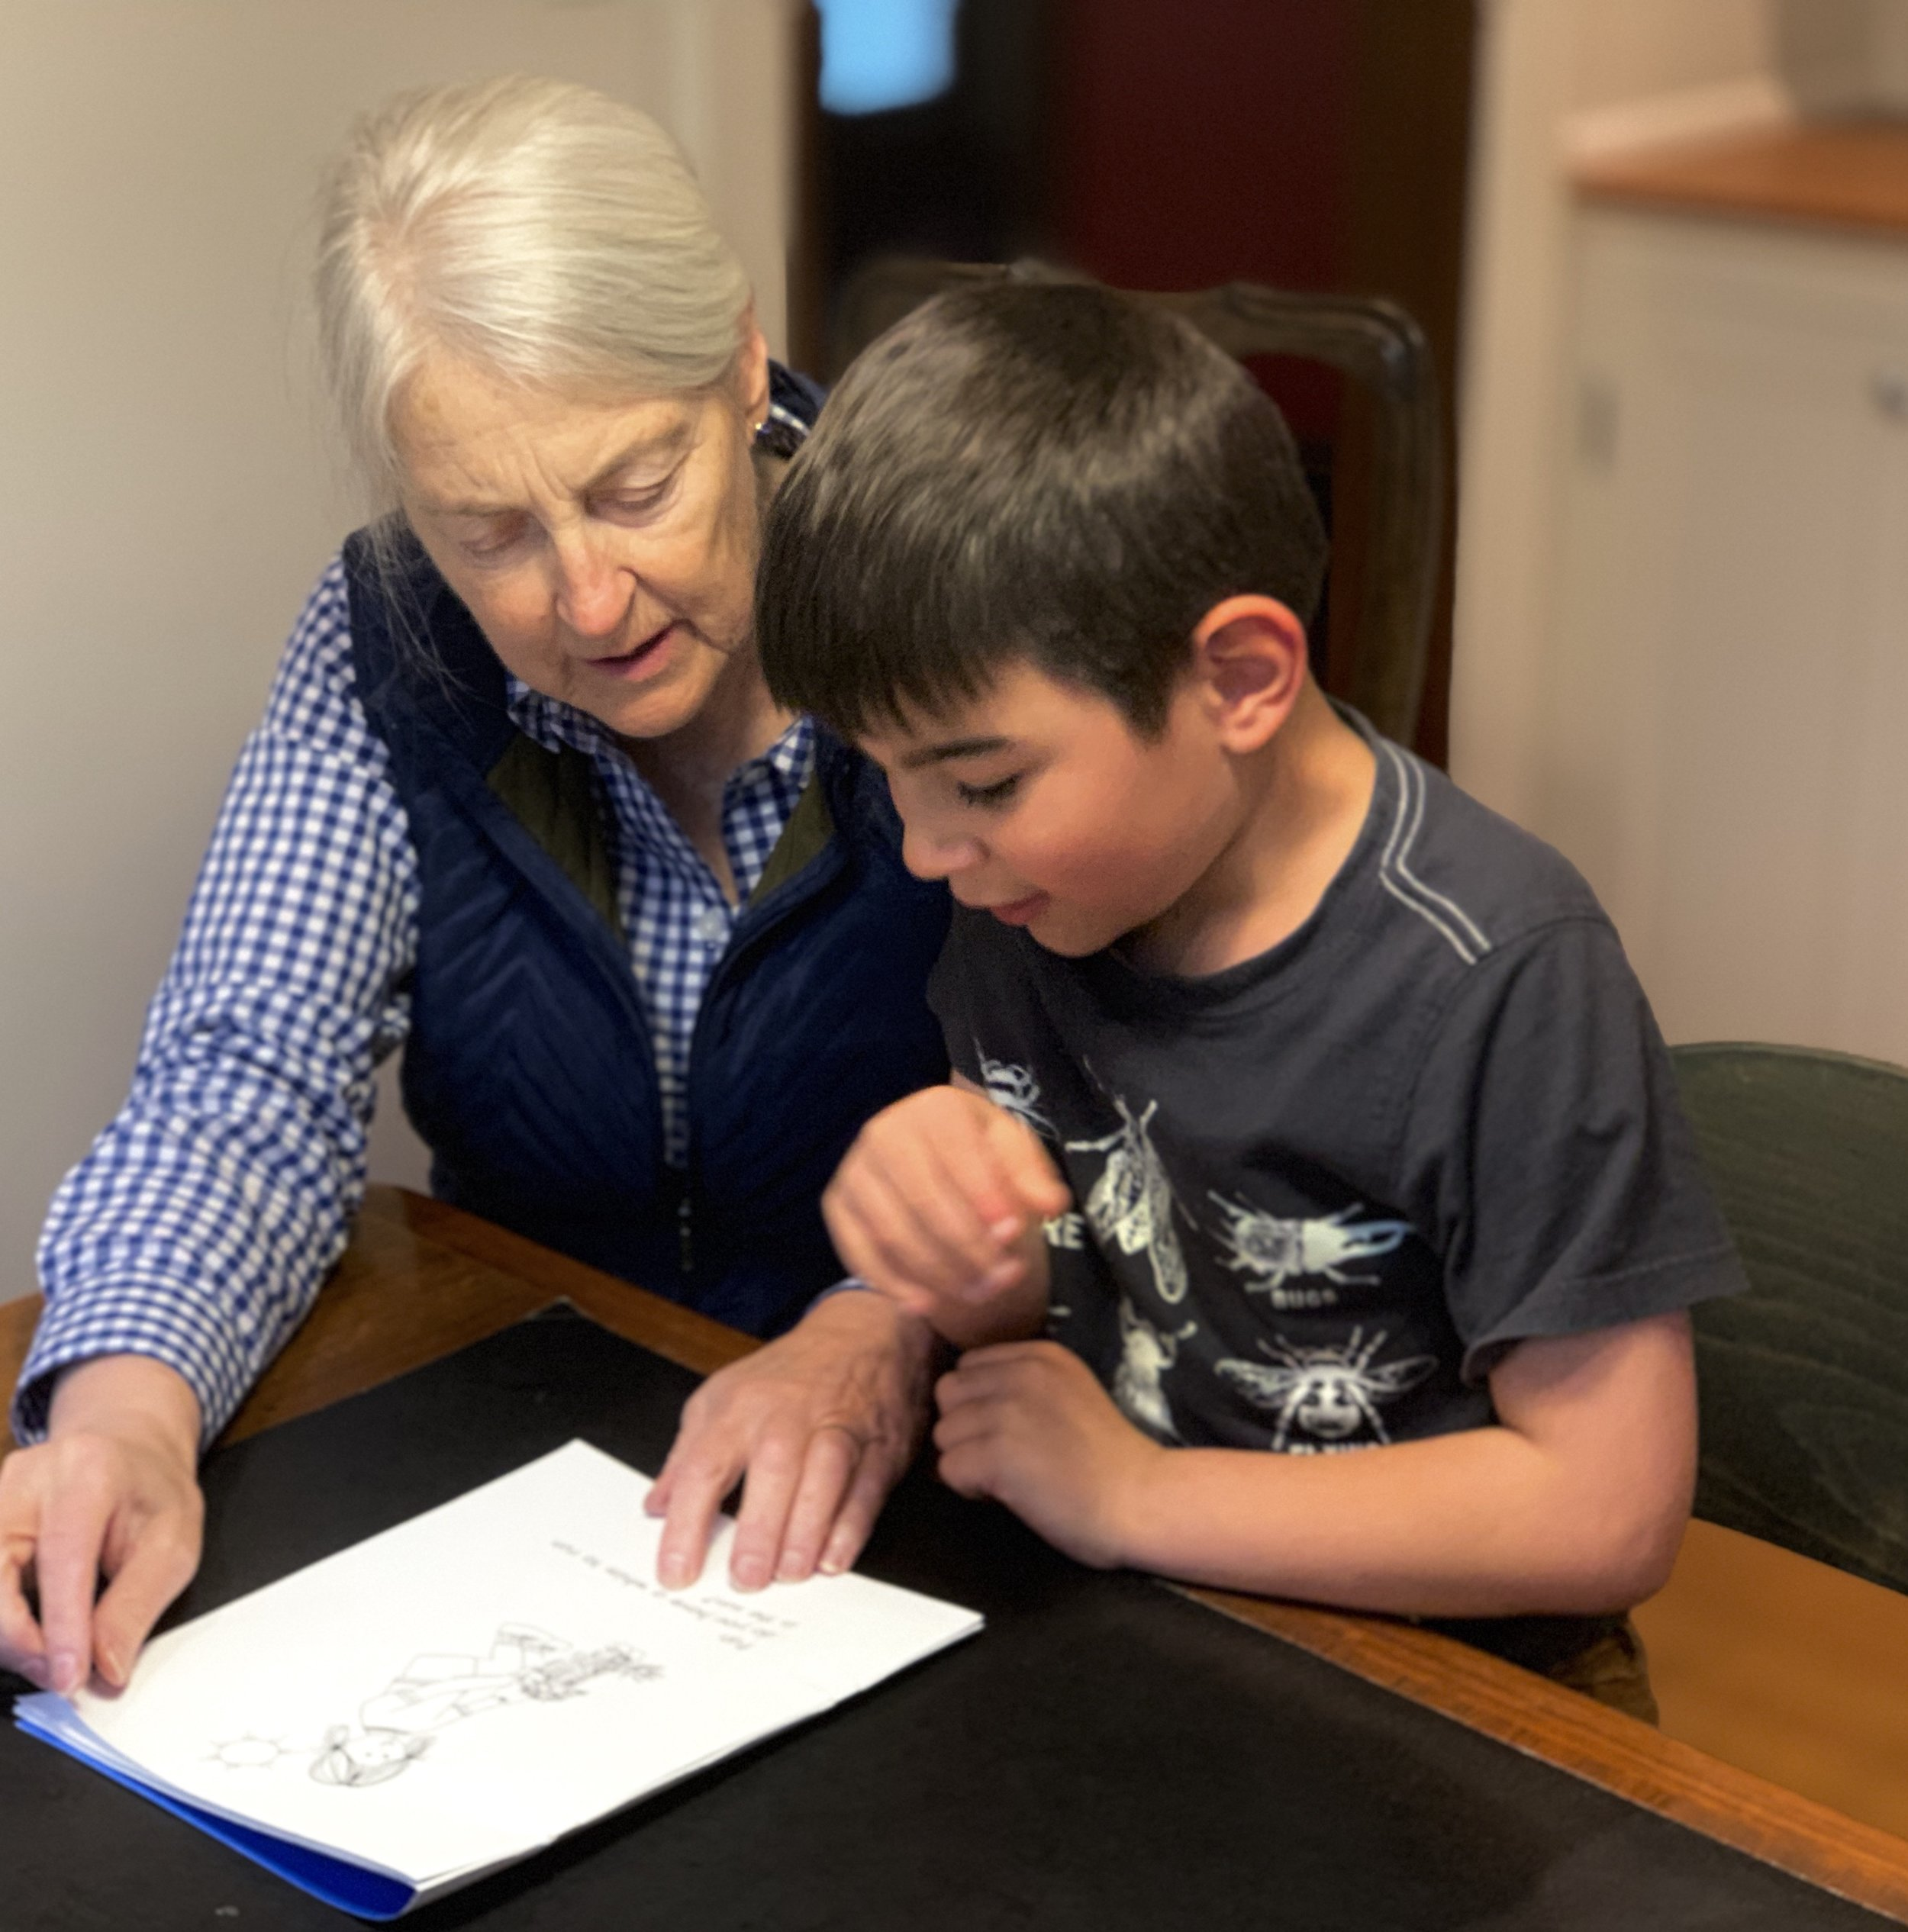 Language Skills Therapy - Language Skills Therapy is a group of approximately twenty-five educational therapists who are individually matched to their students. Our office is in Beaverton, but our therapists work throughout the greater Portland area. We work with our students during mutually agreed upon times including before school, during the school day and after school. Therapy usually extends through part of the summer.